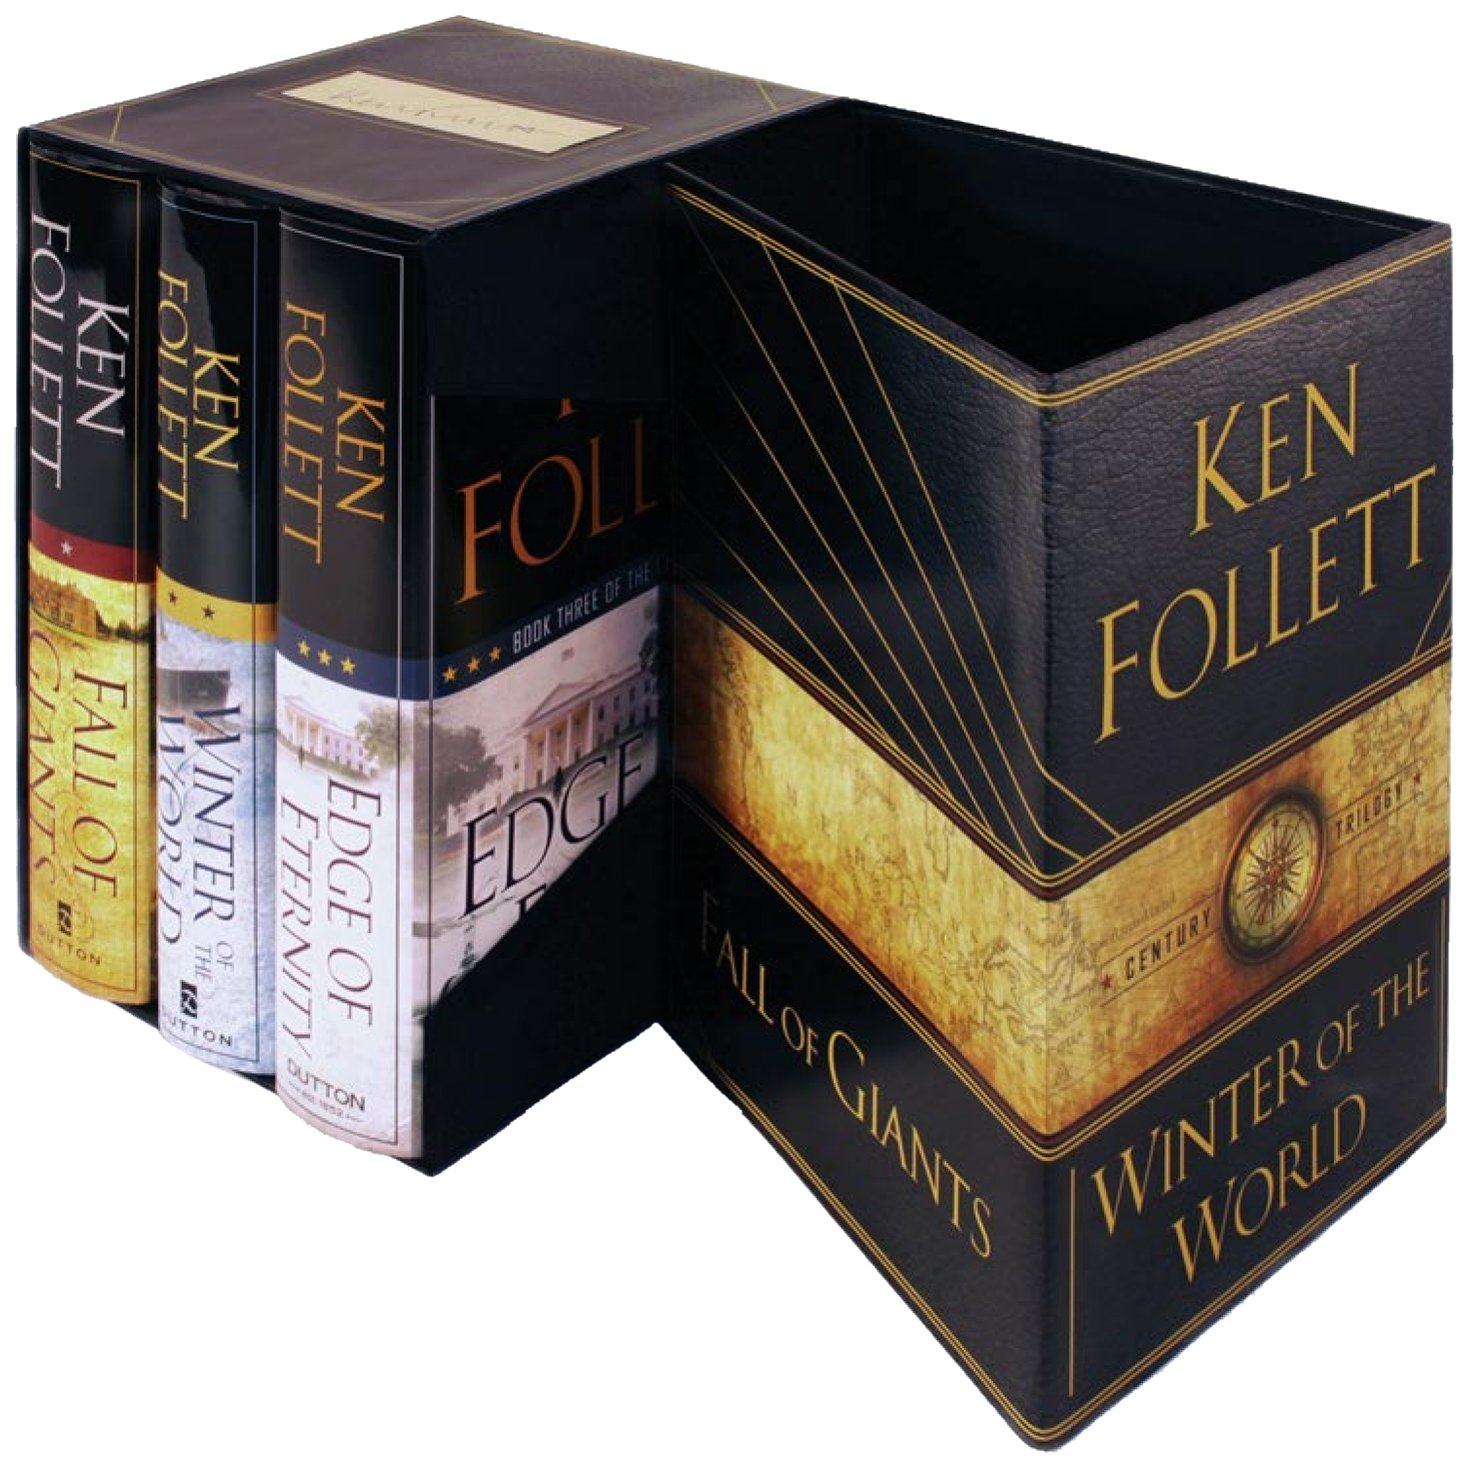 The Century Trilogy Boxed Set ISBN-13 9780525954880